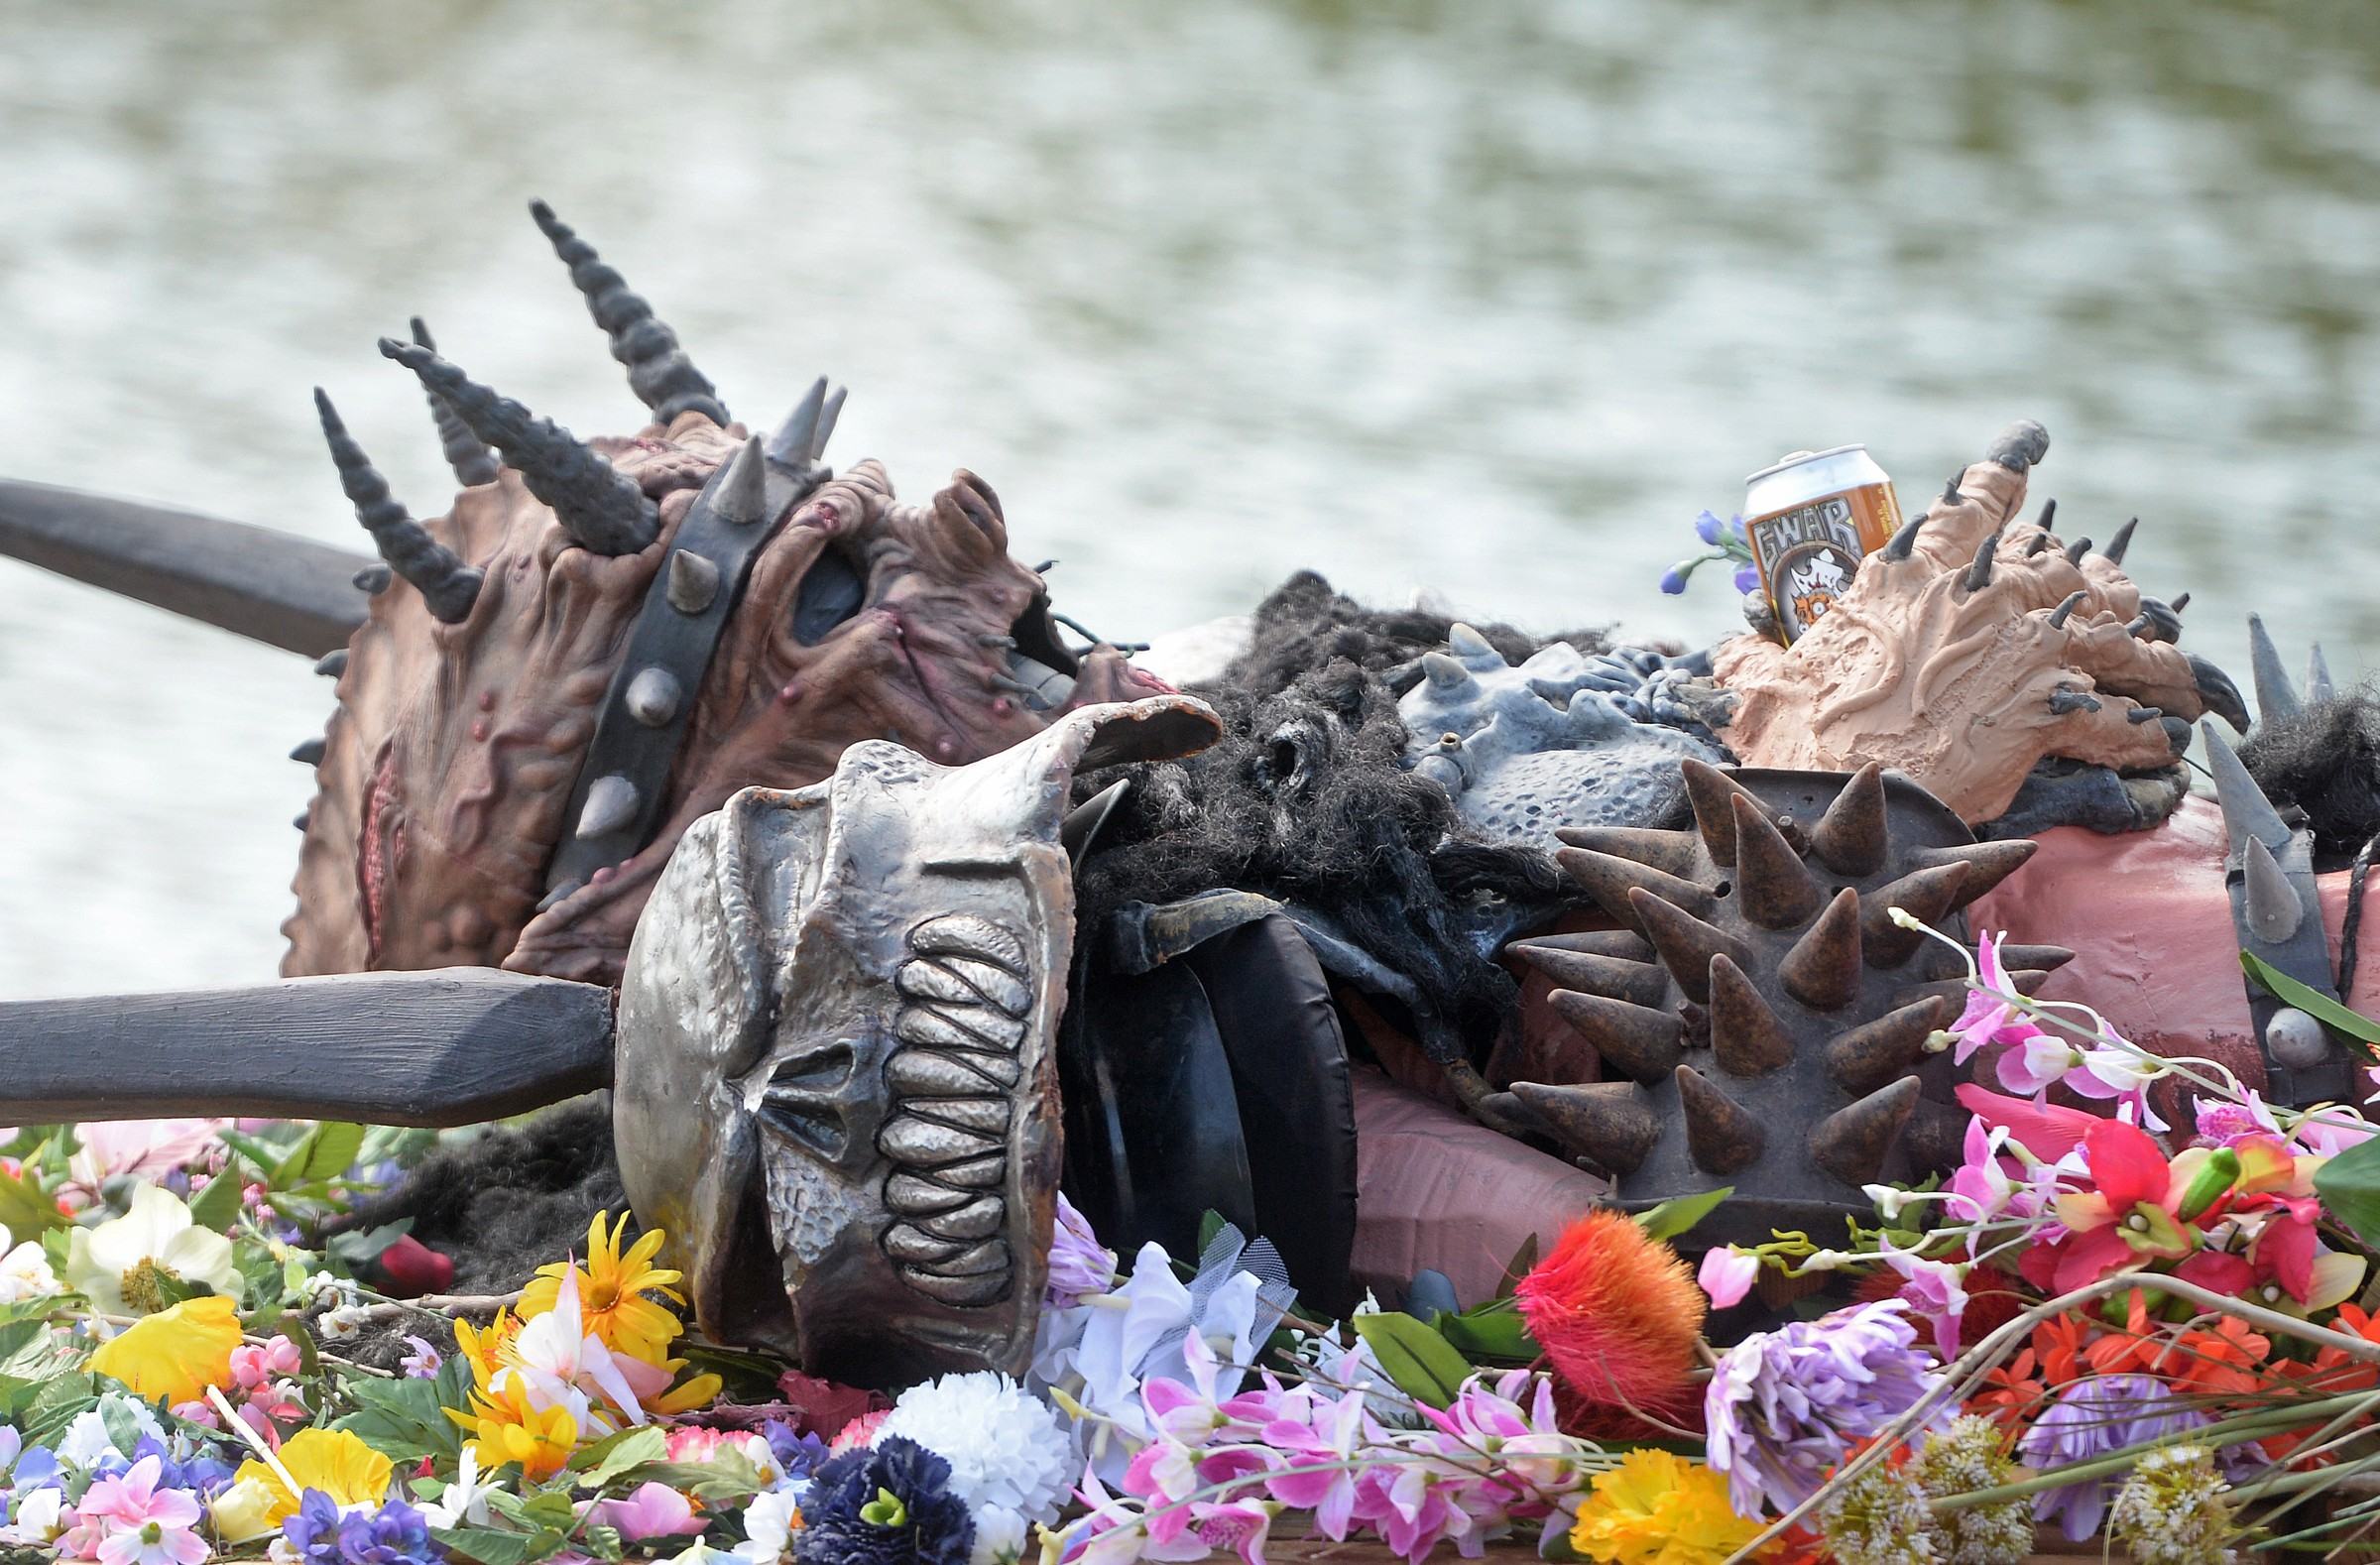 Father Of Late Gwar Frontman Sues Band News And Features Style